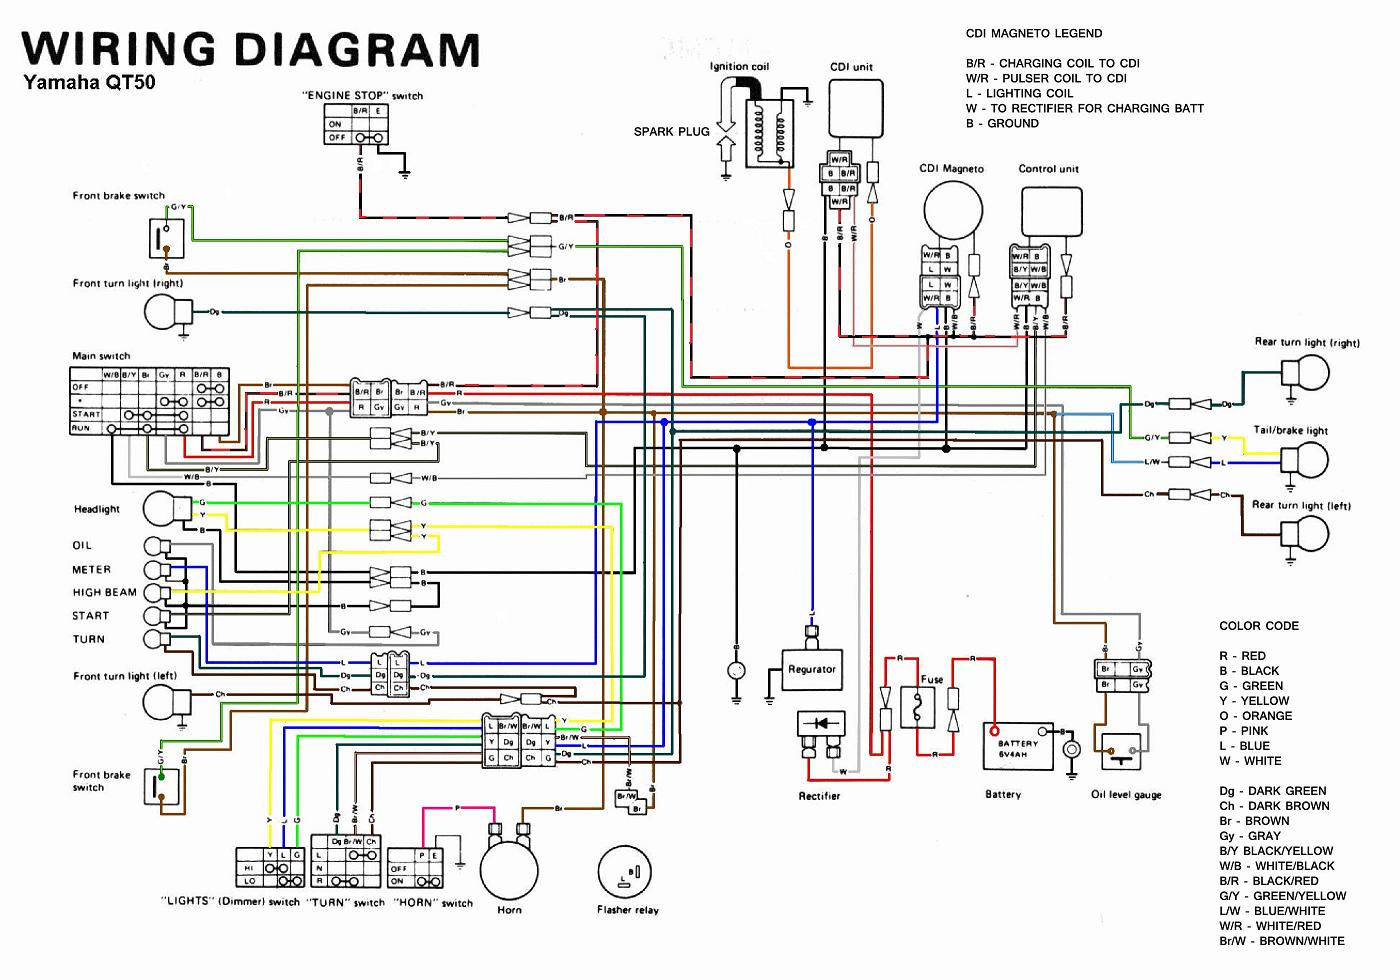 Yamaha Wiring Diagram Data Golf Cart Gas Qt50 Luvin And Other Nopeds Parts